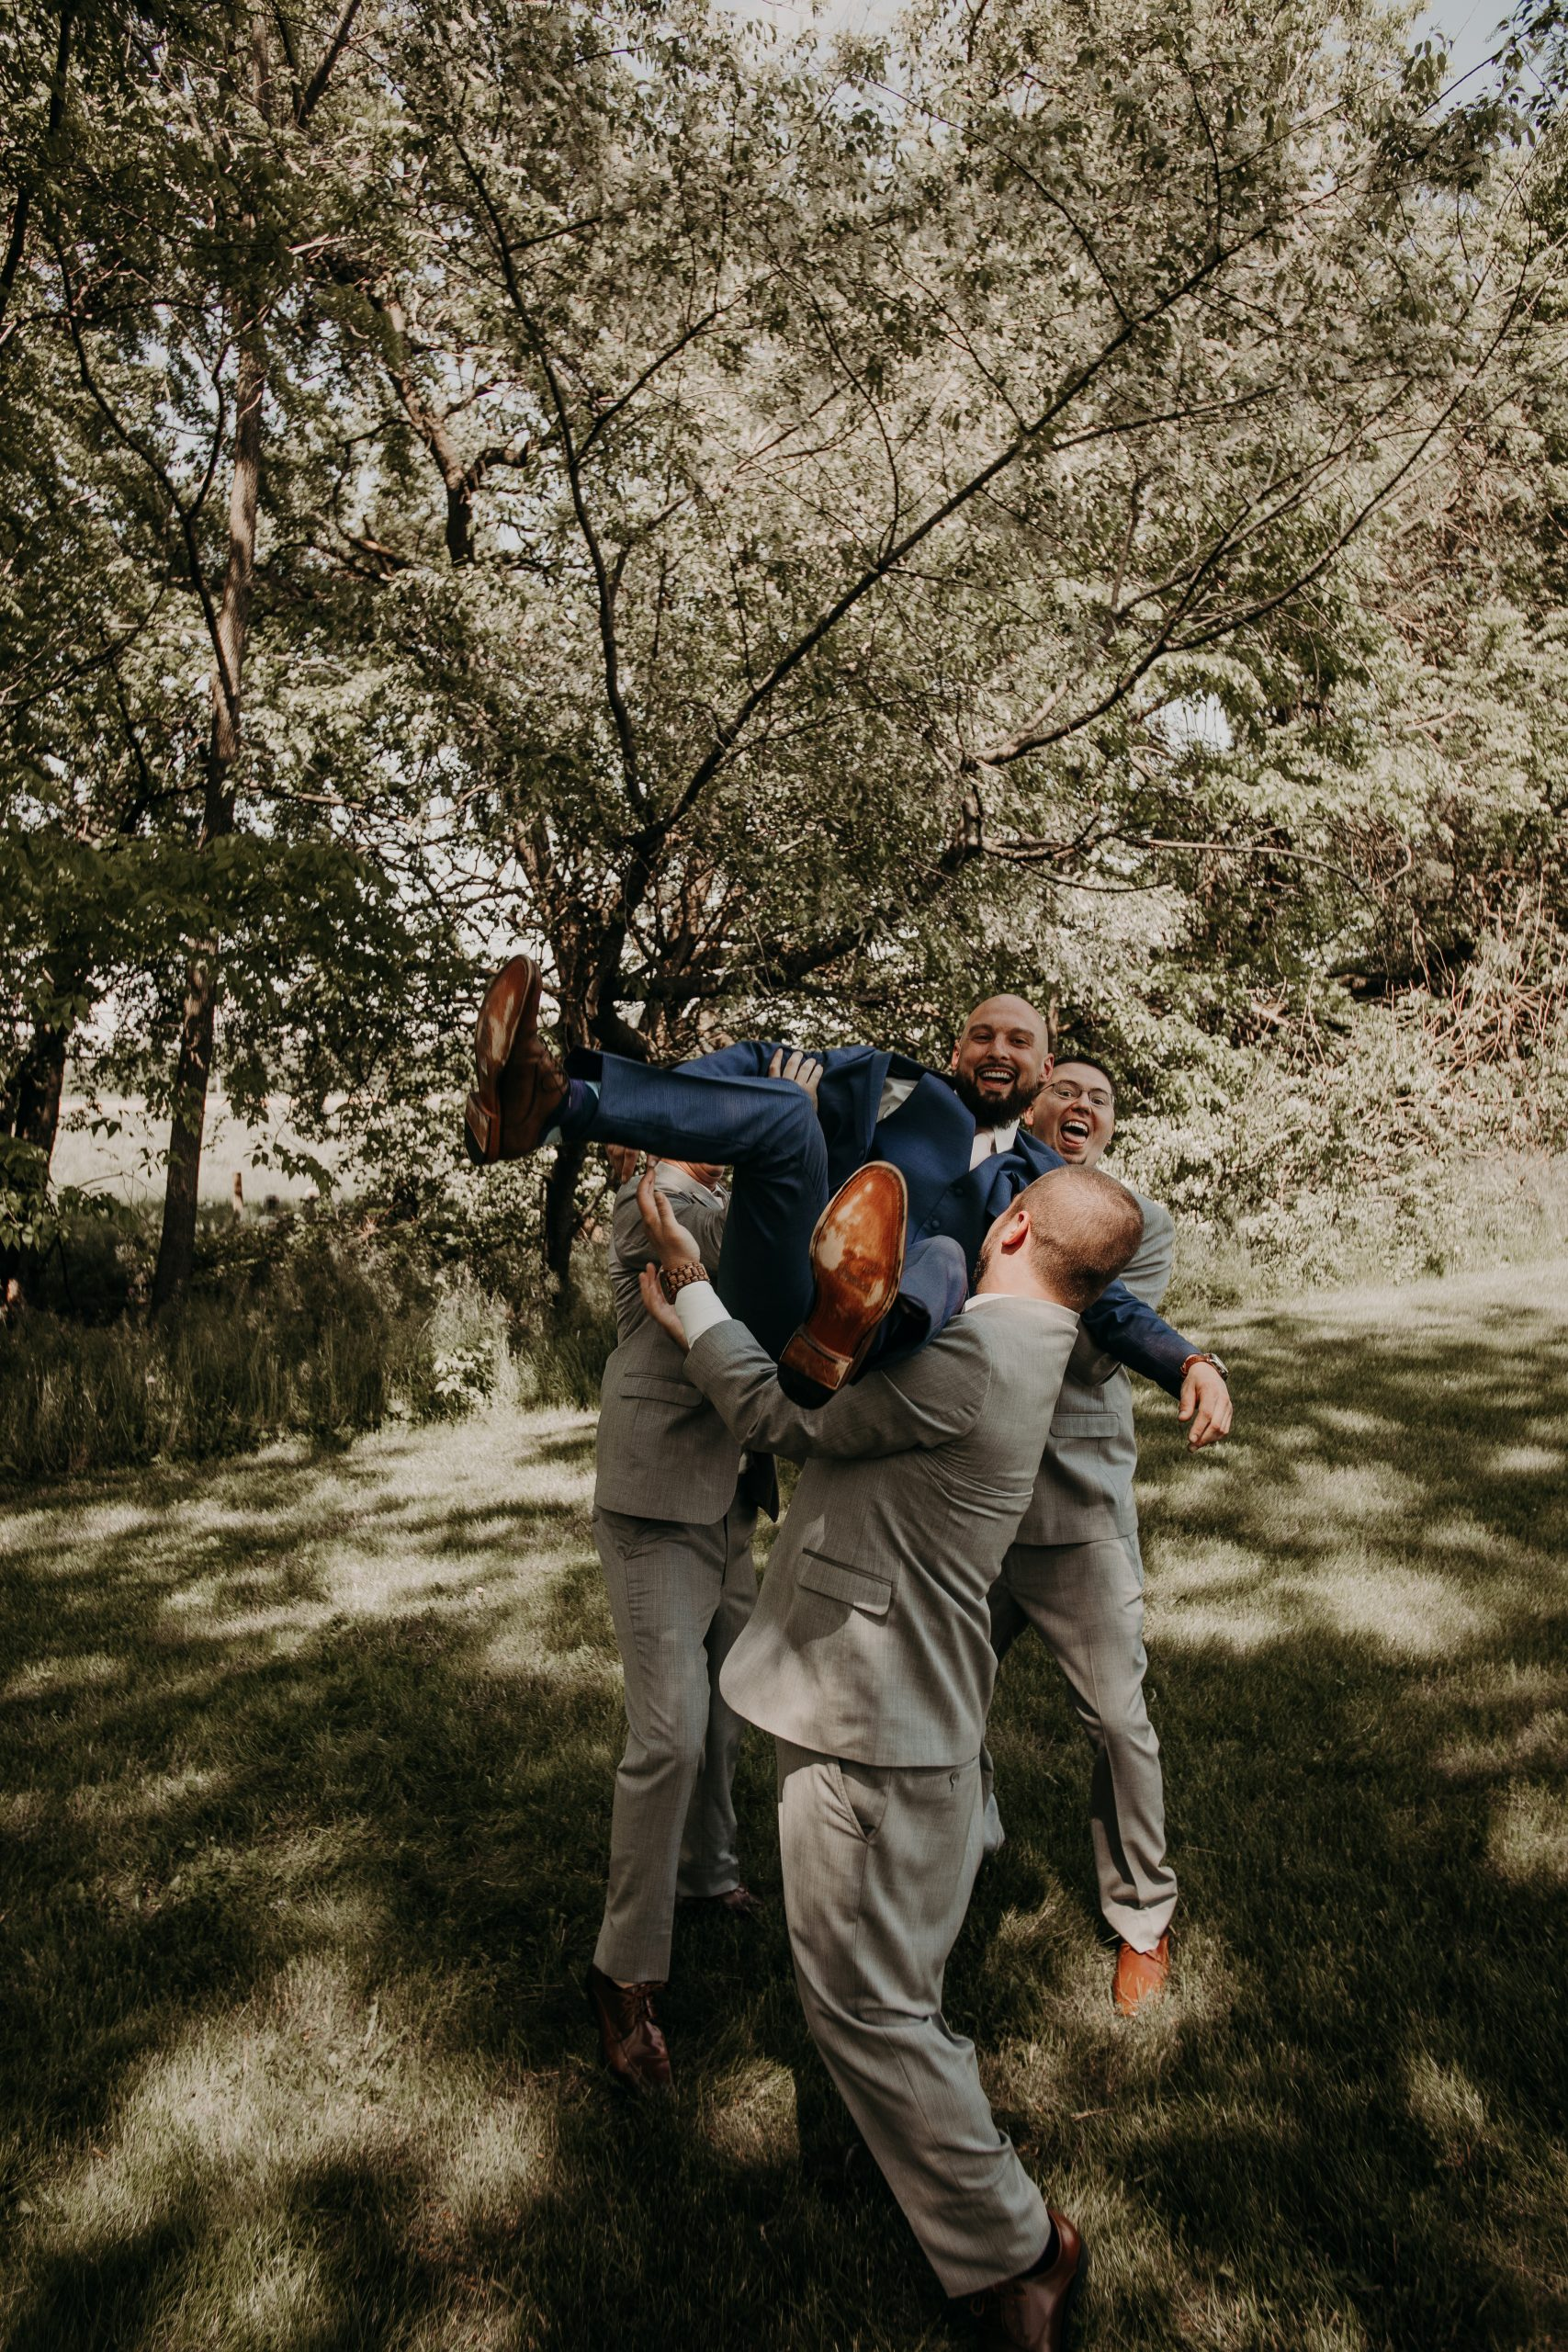 the groomsmen pull some shenanigans on their buddy who just got hitched. Christine and Richard wed on the Chestnut Hill Villa grounds on May of 2019. This organic ethereal styled wedding was captured by Garnet Dahlia Photography and featured on Dream Weddings.